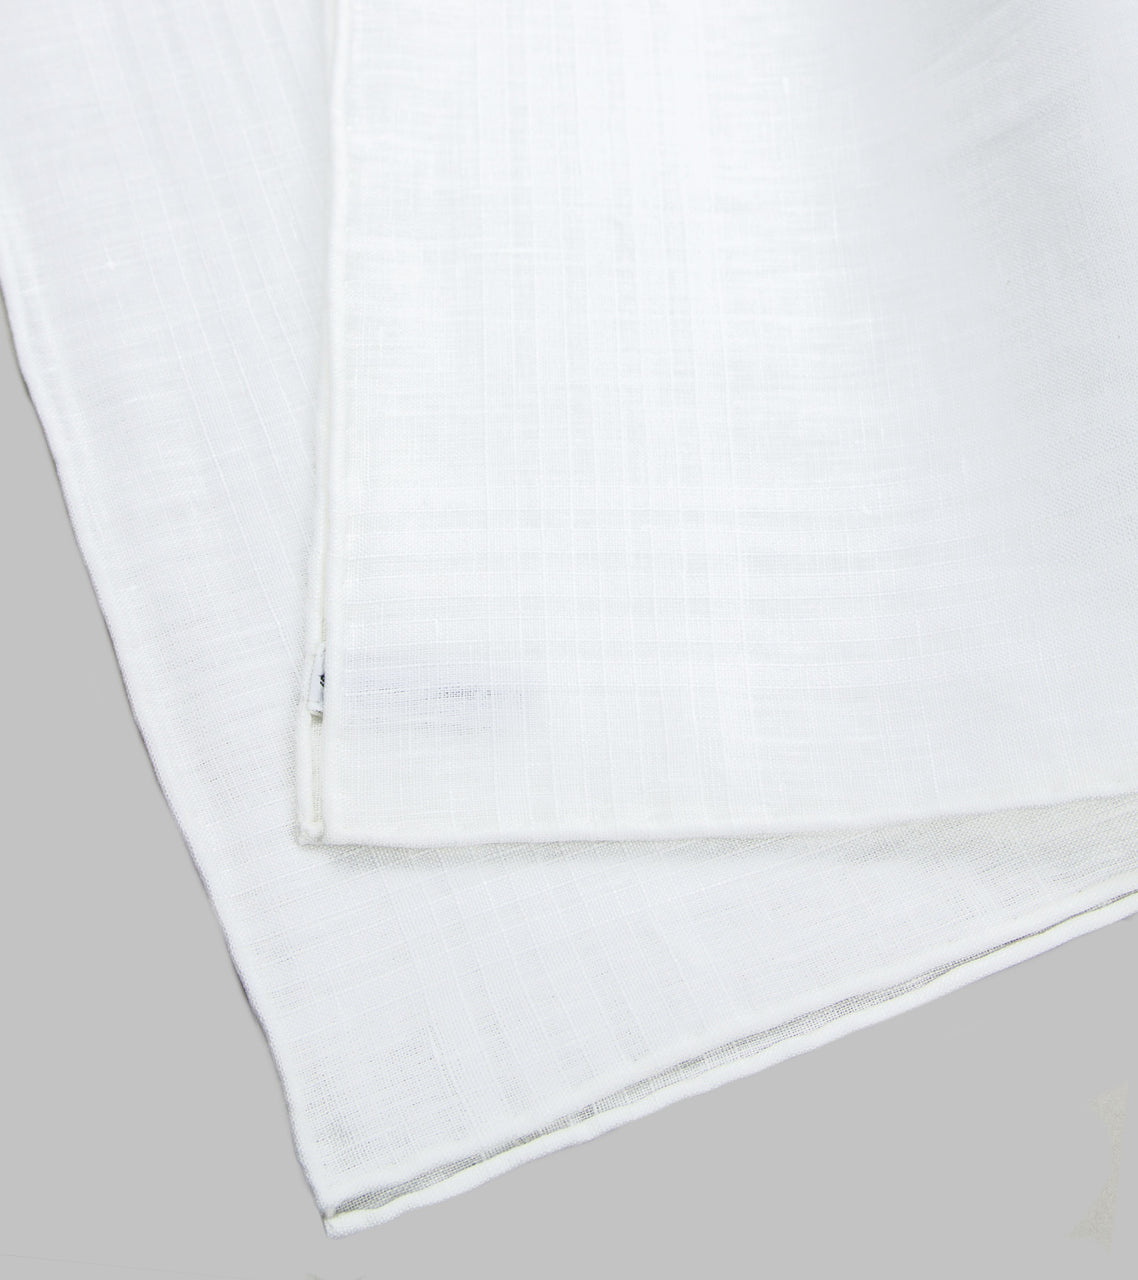 Simonnot Godard 8013/2 Handkerchief White